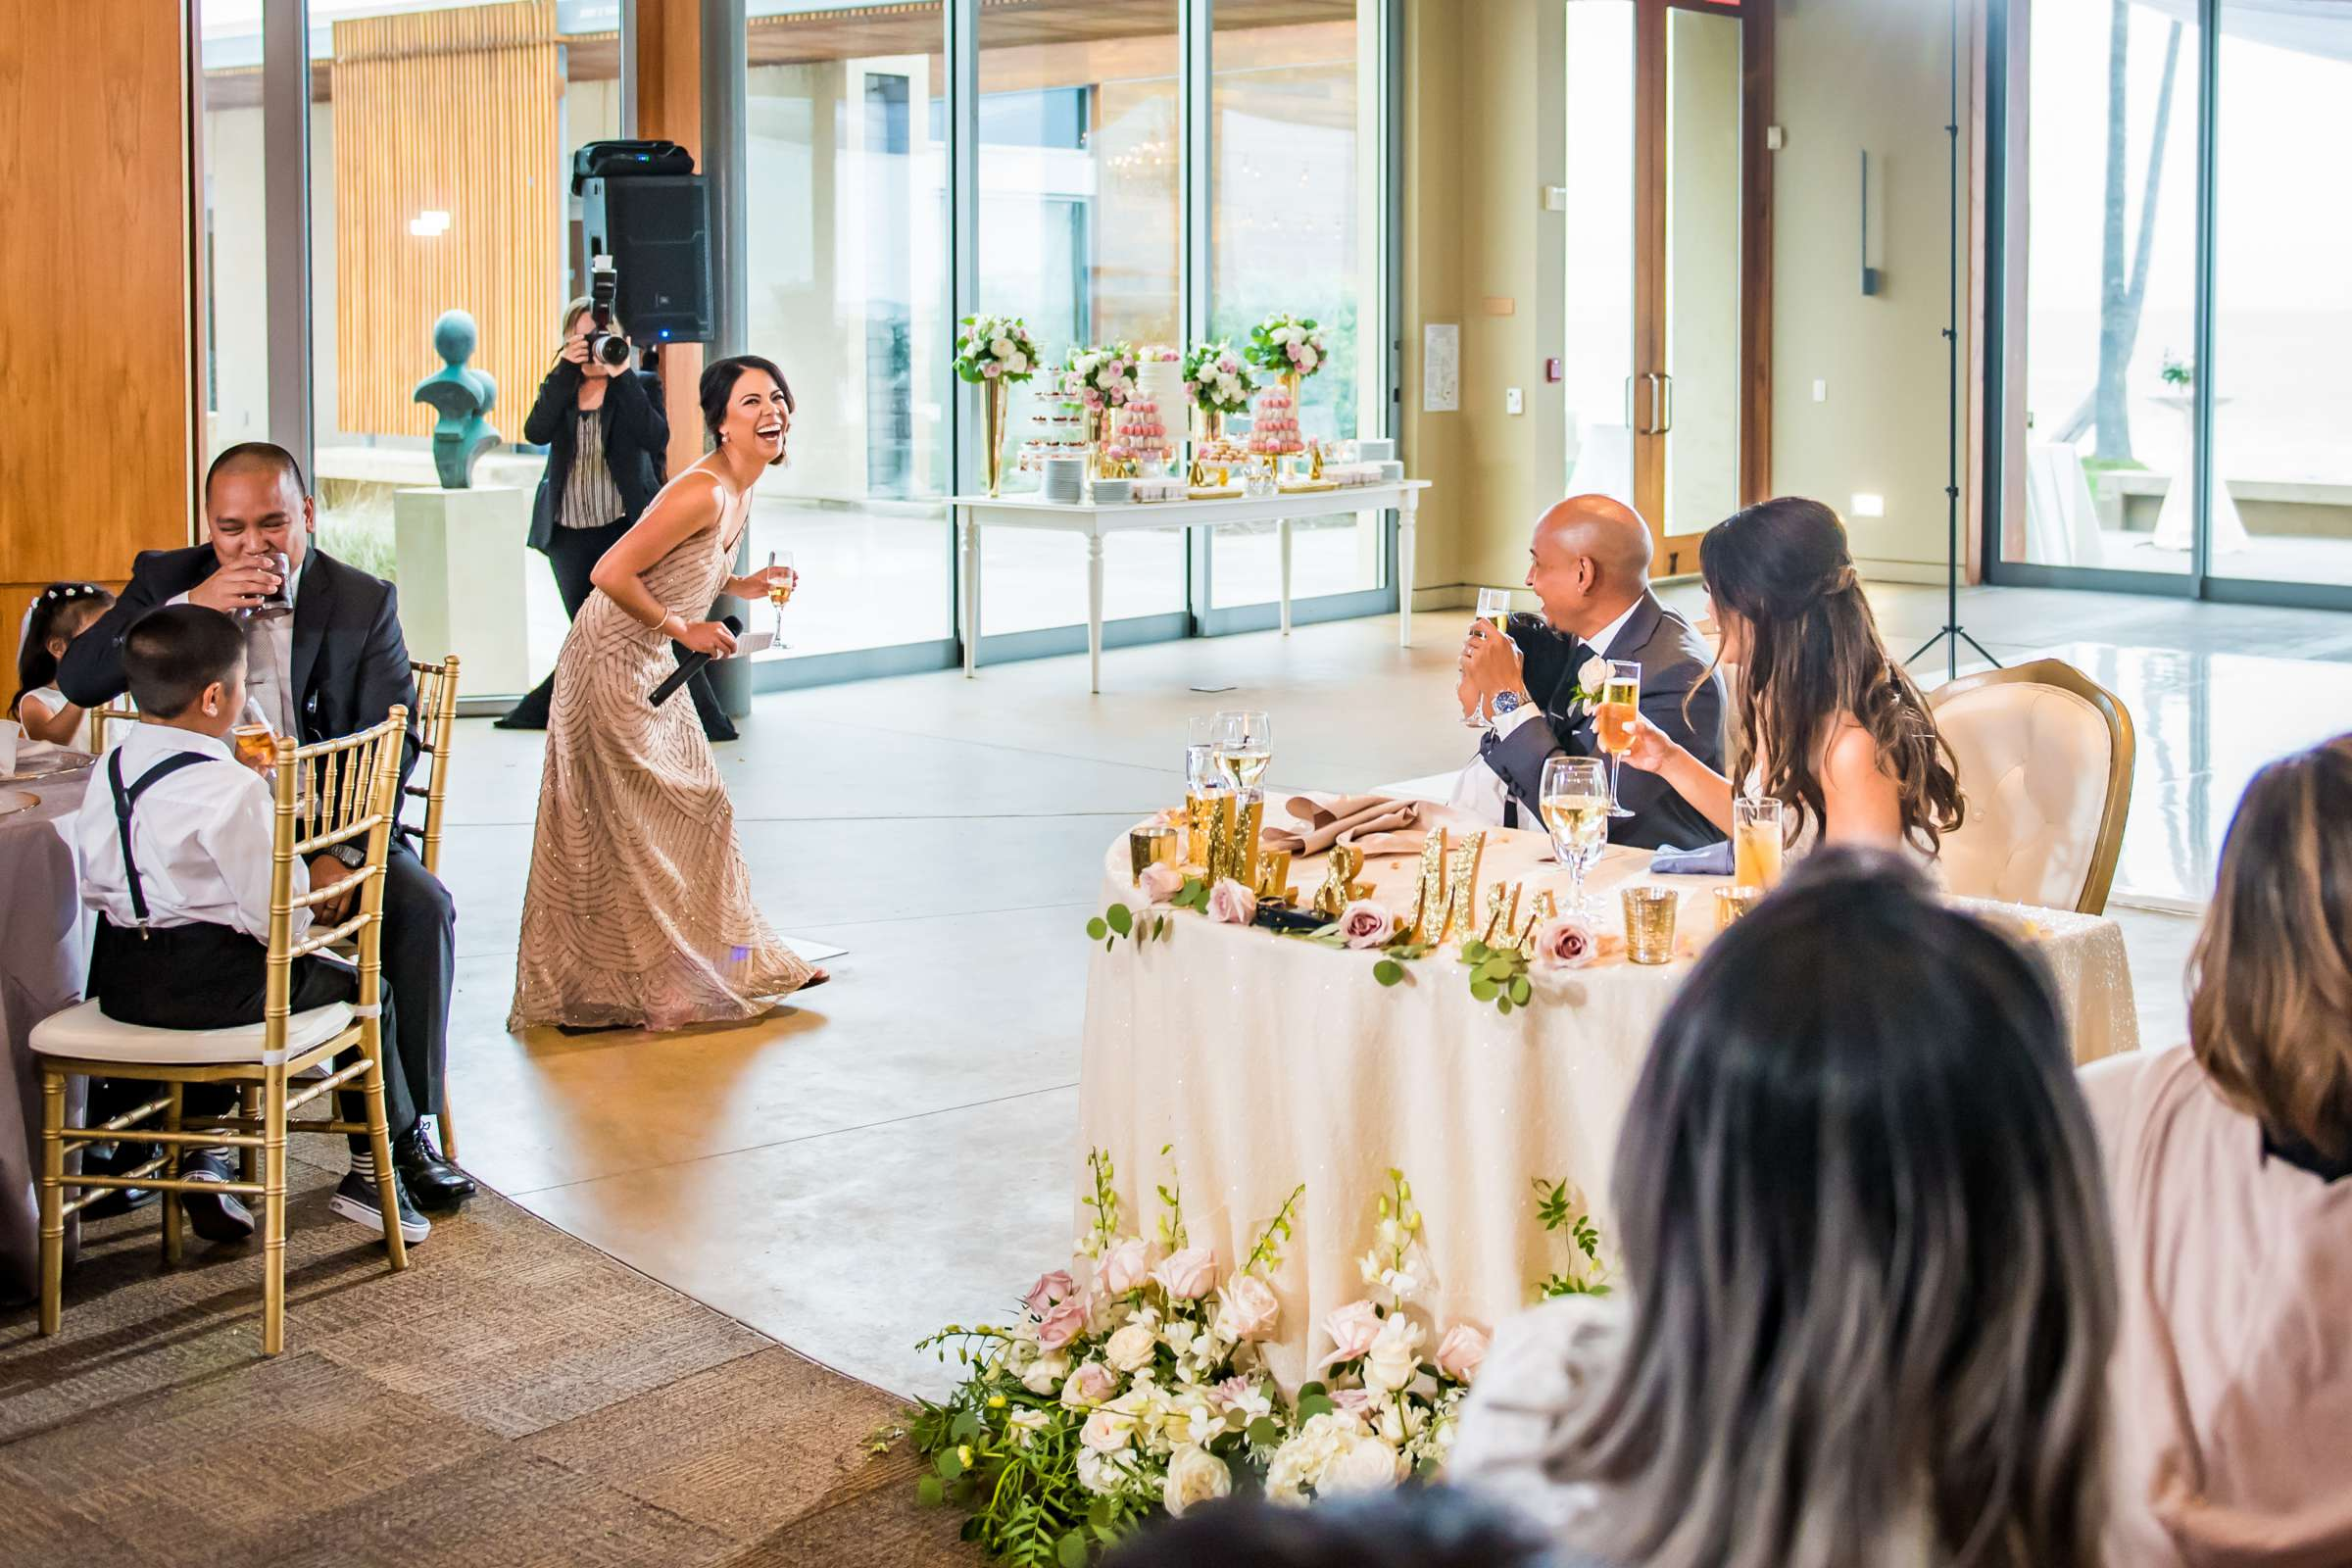 Scripps Seaside Forum Wedding coordinated by Lavish Weddings, Cindy and Justin Wedding Photo #381860 by True Photography